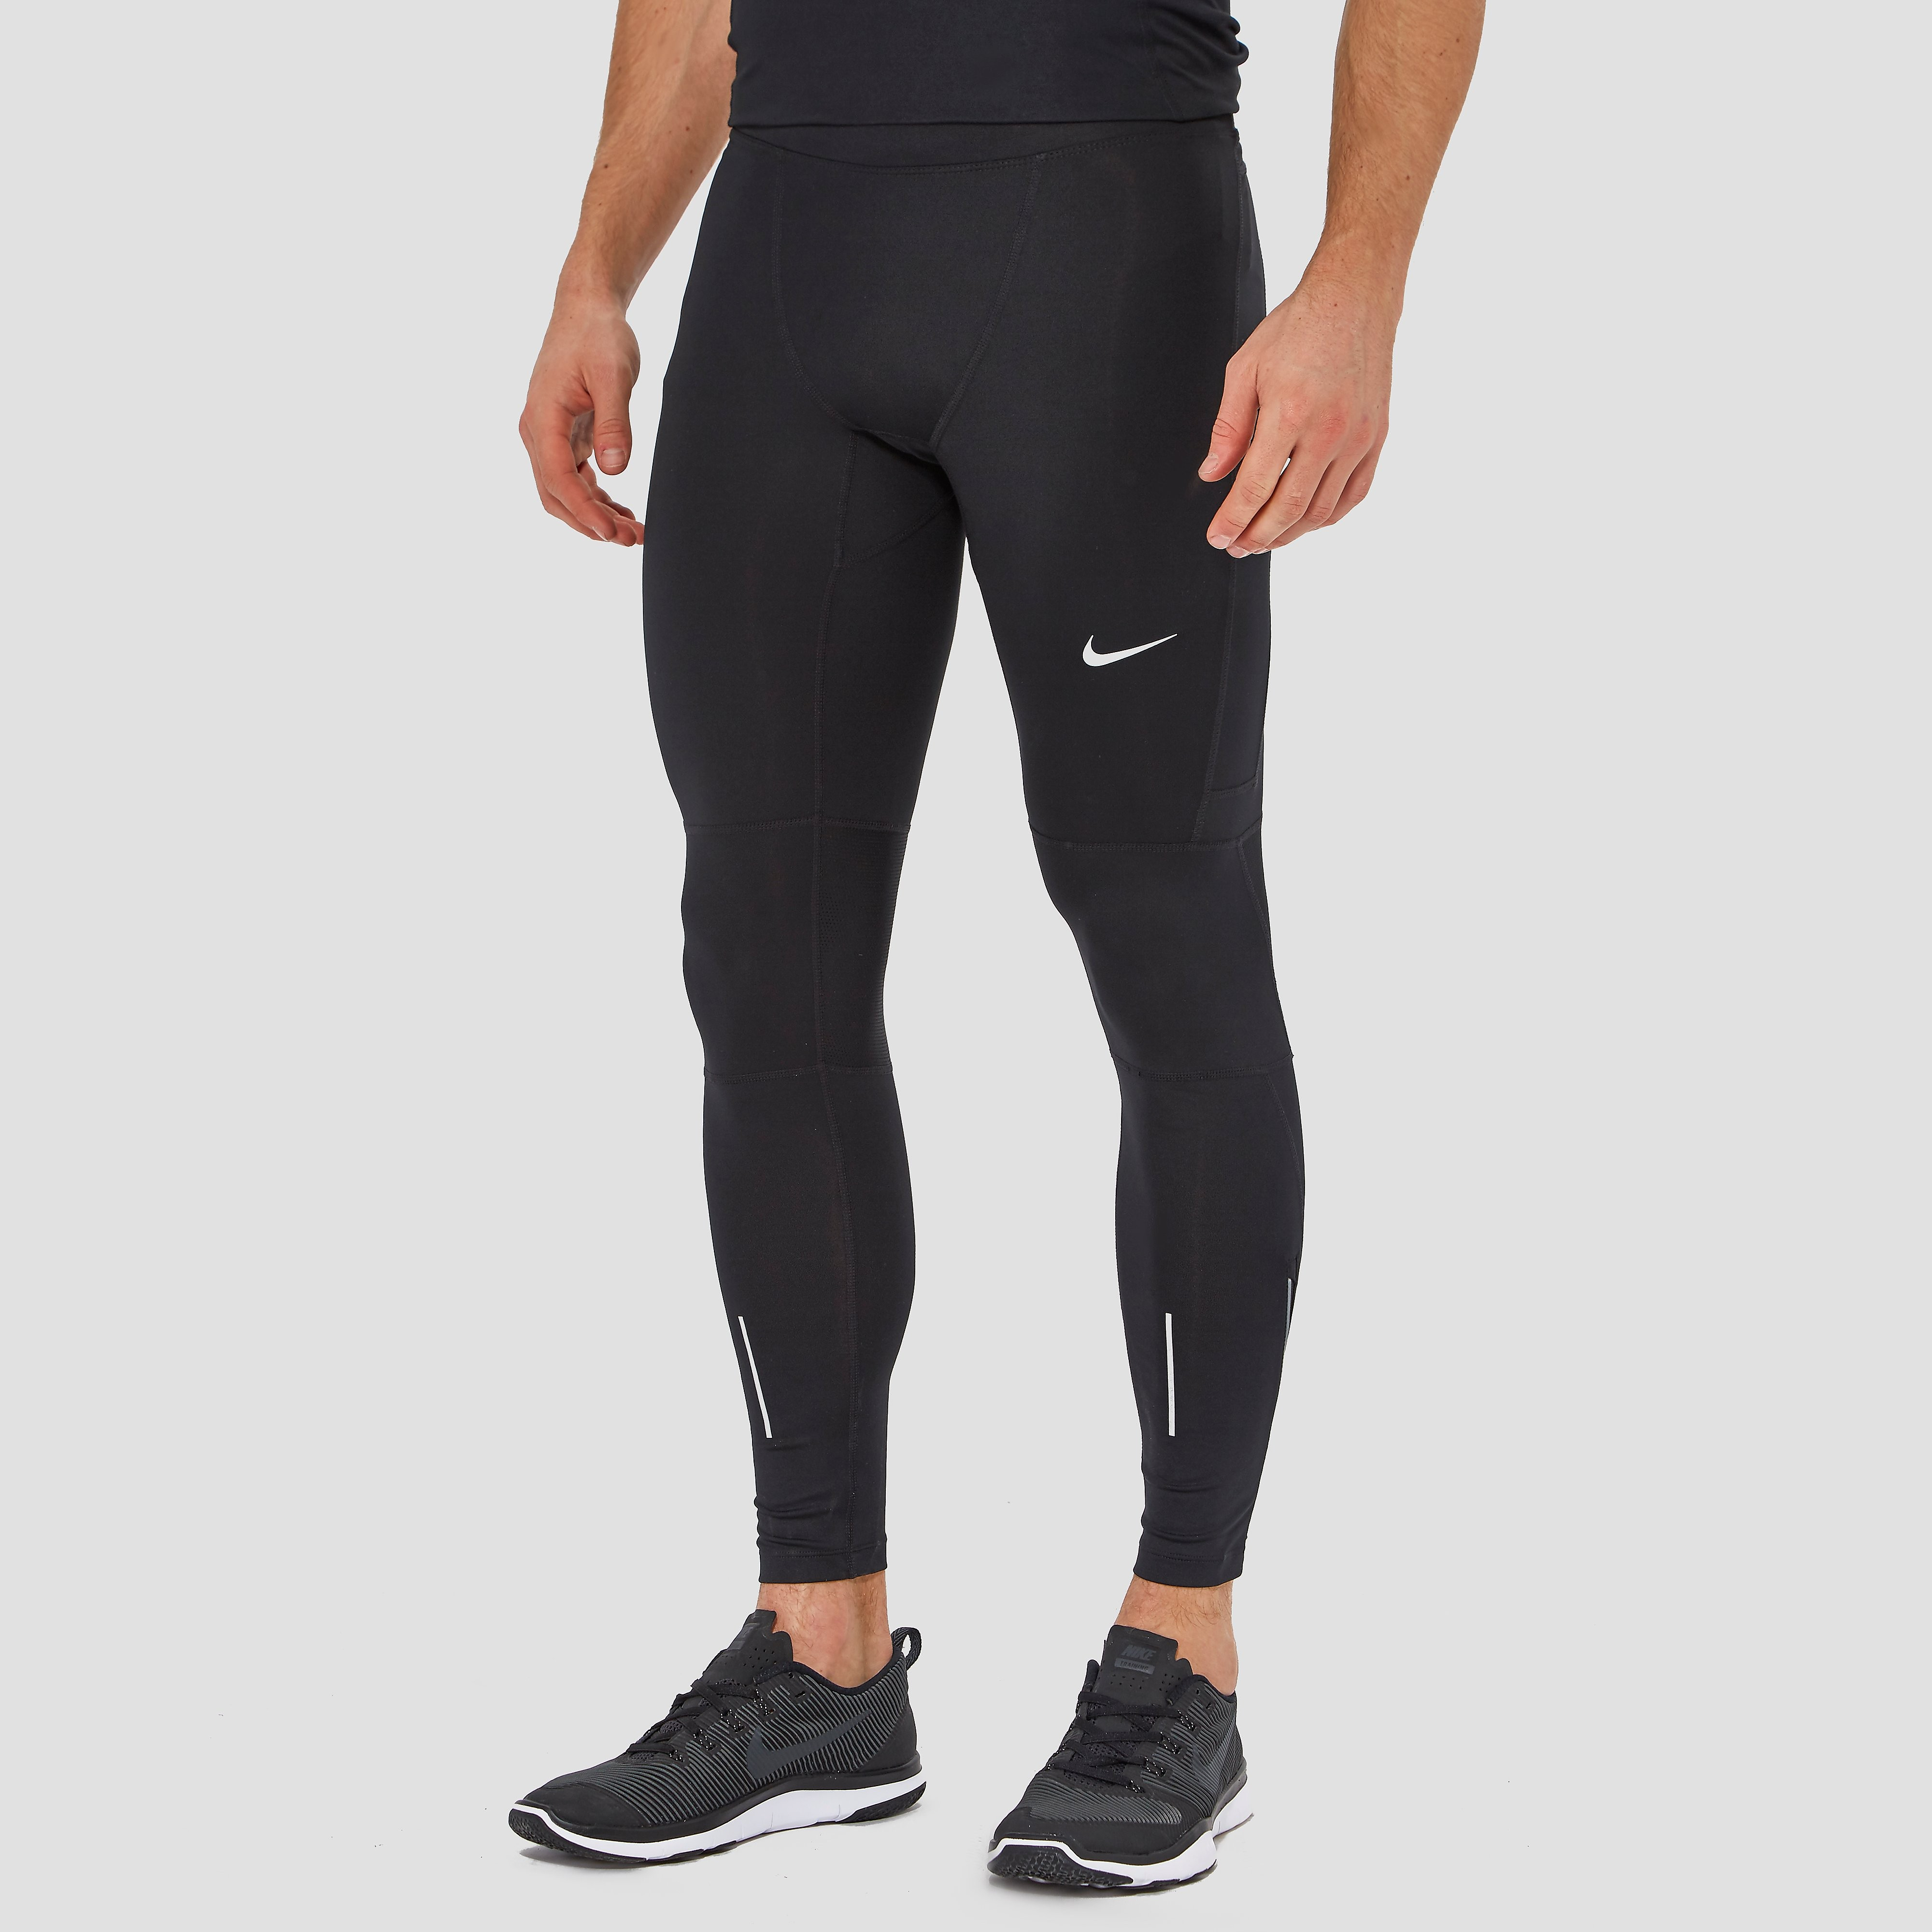 Nike Dri-FIT Men's Essential Tights